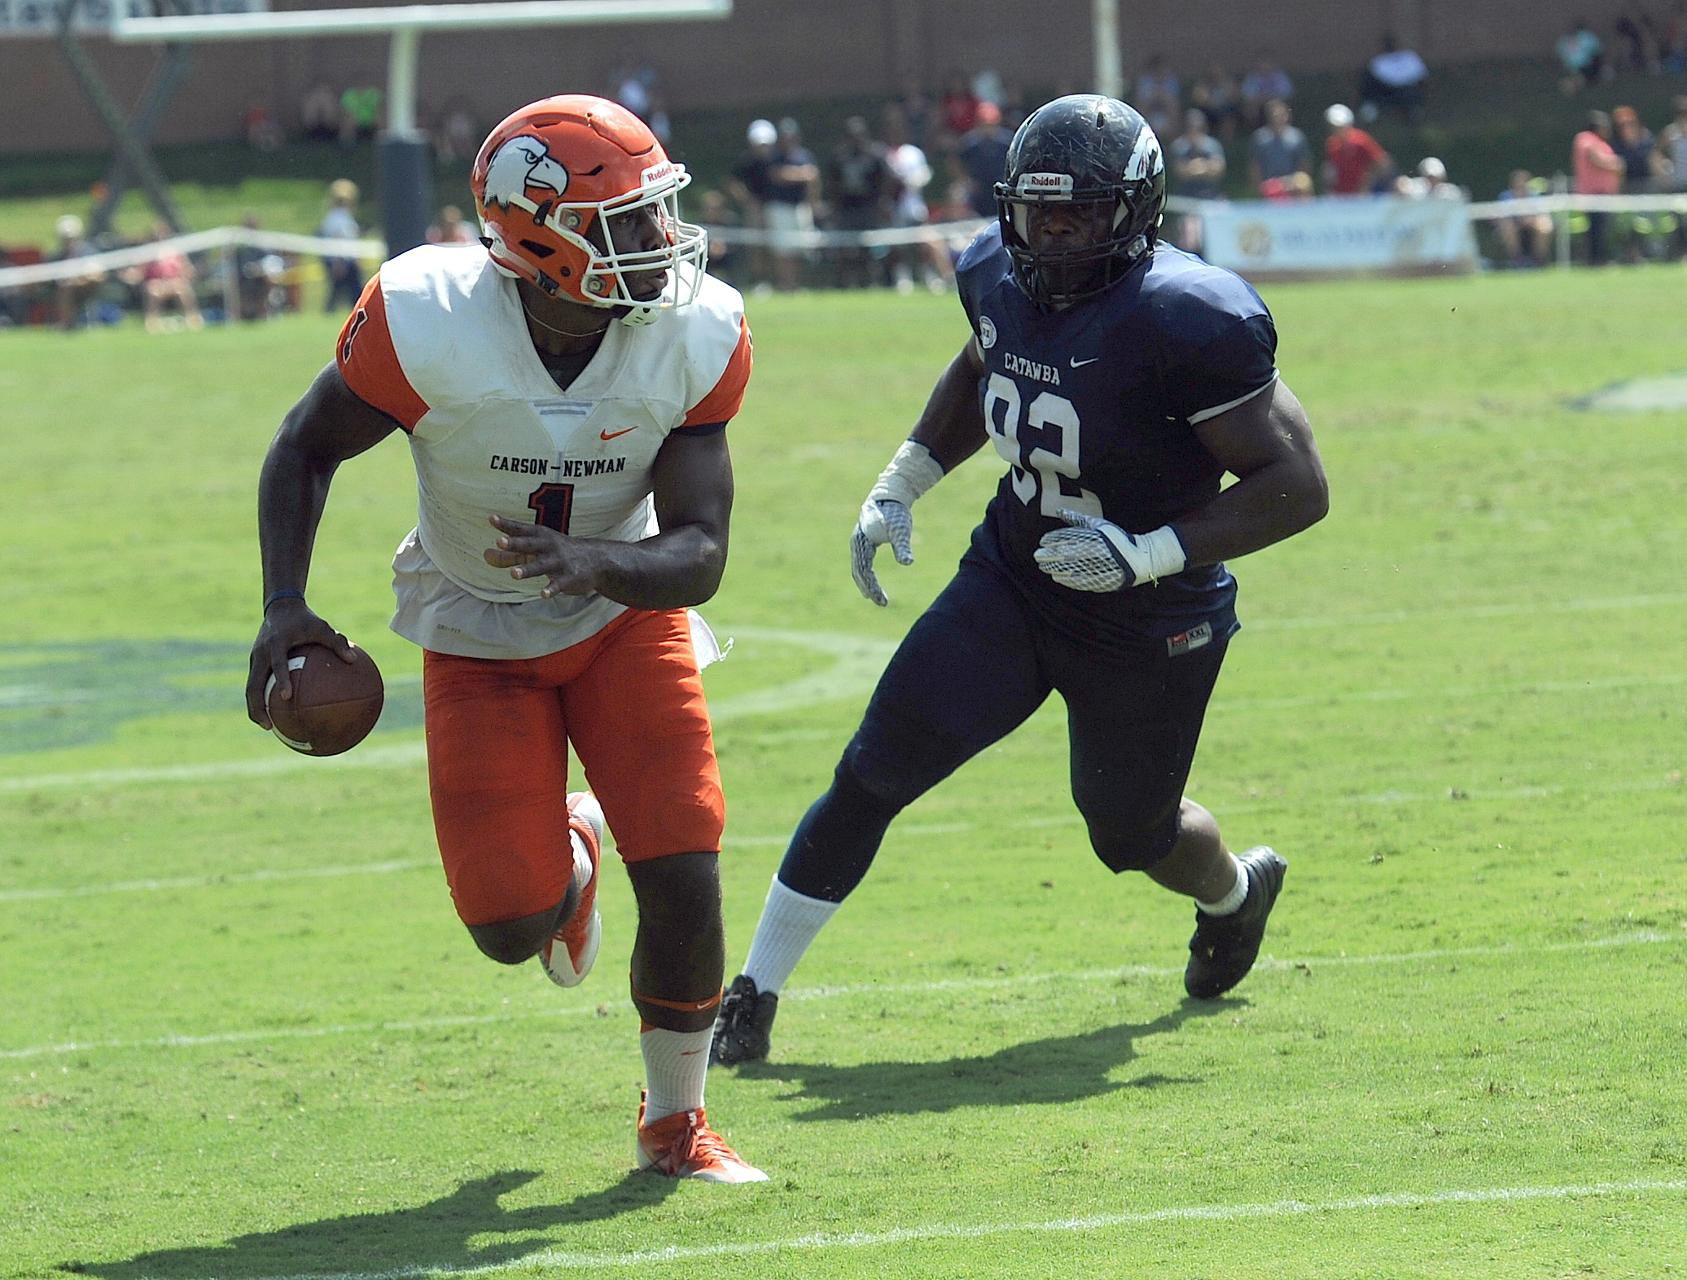 Turnovers doom Eagles to 40-20 loss to Catawba